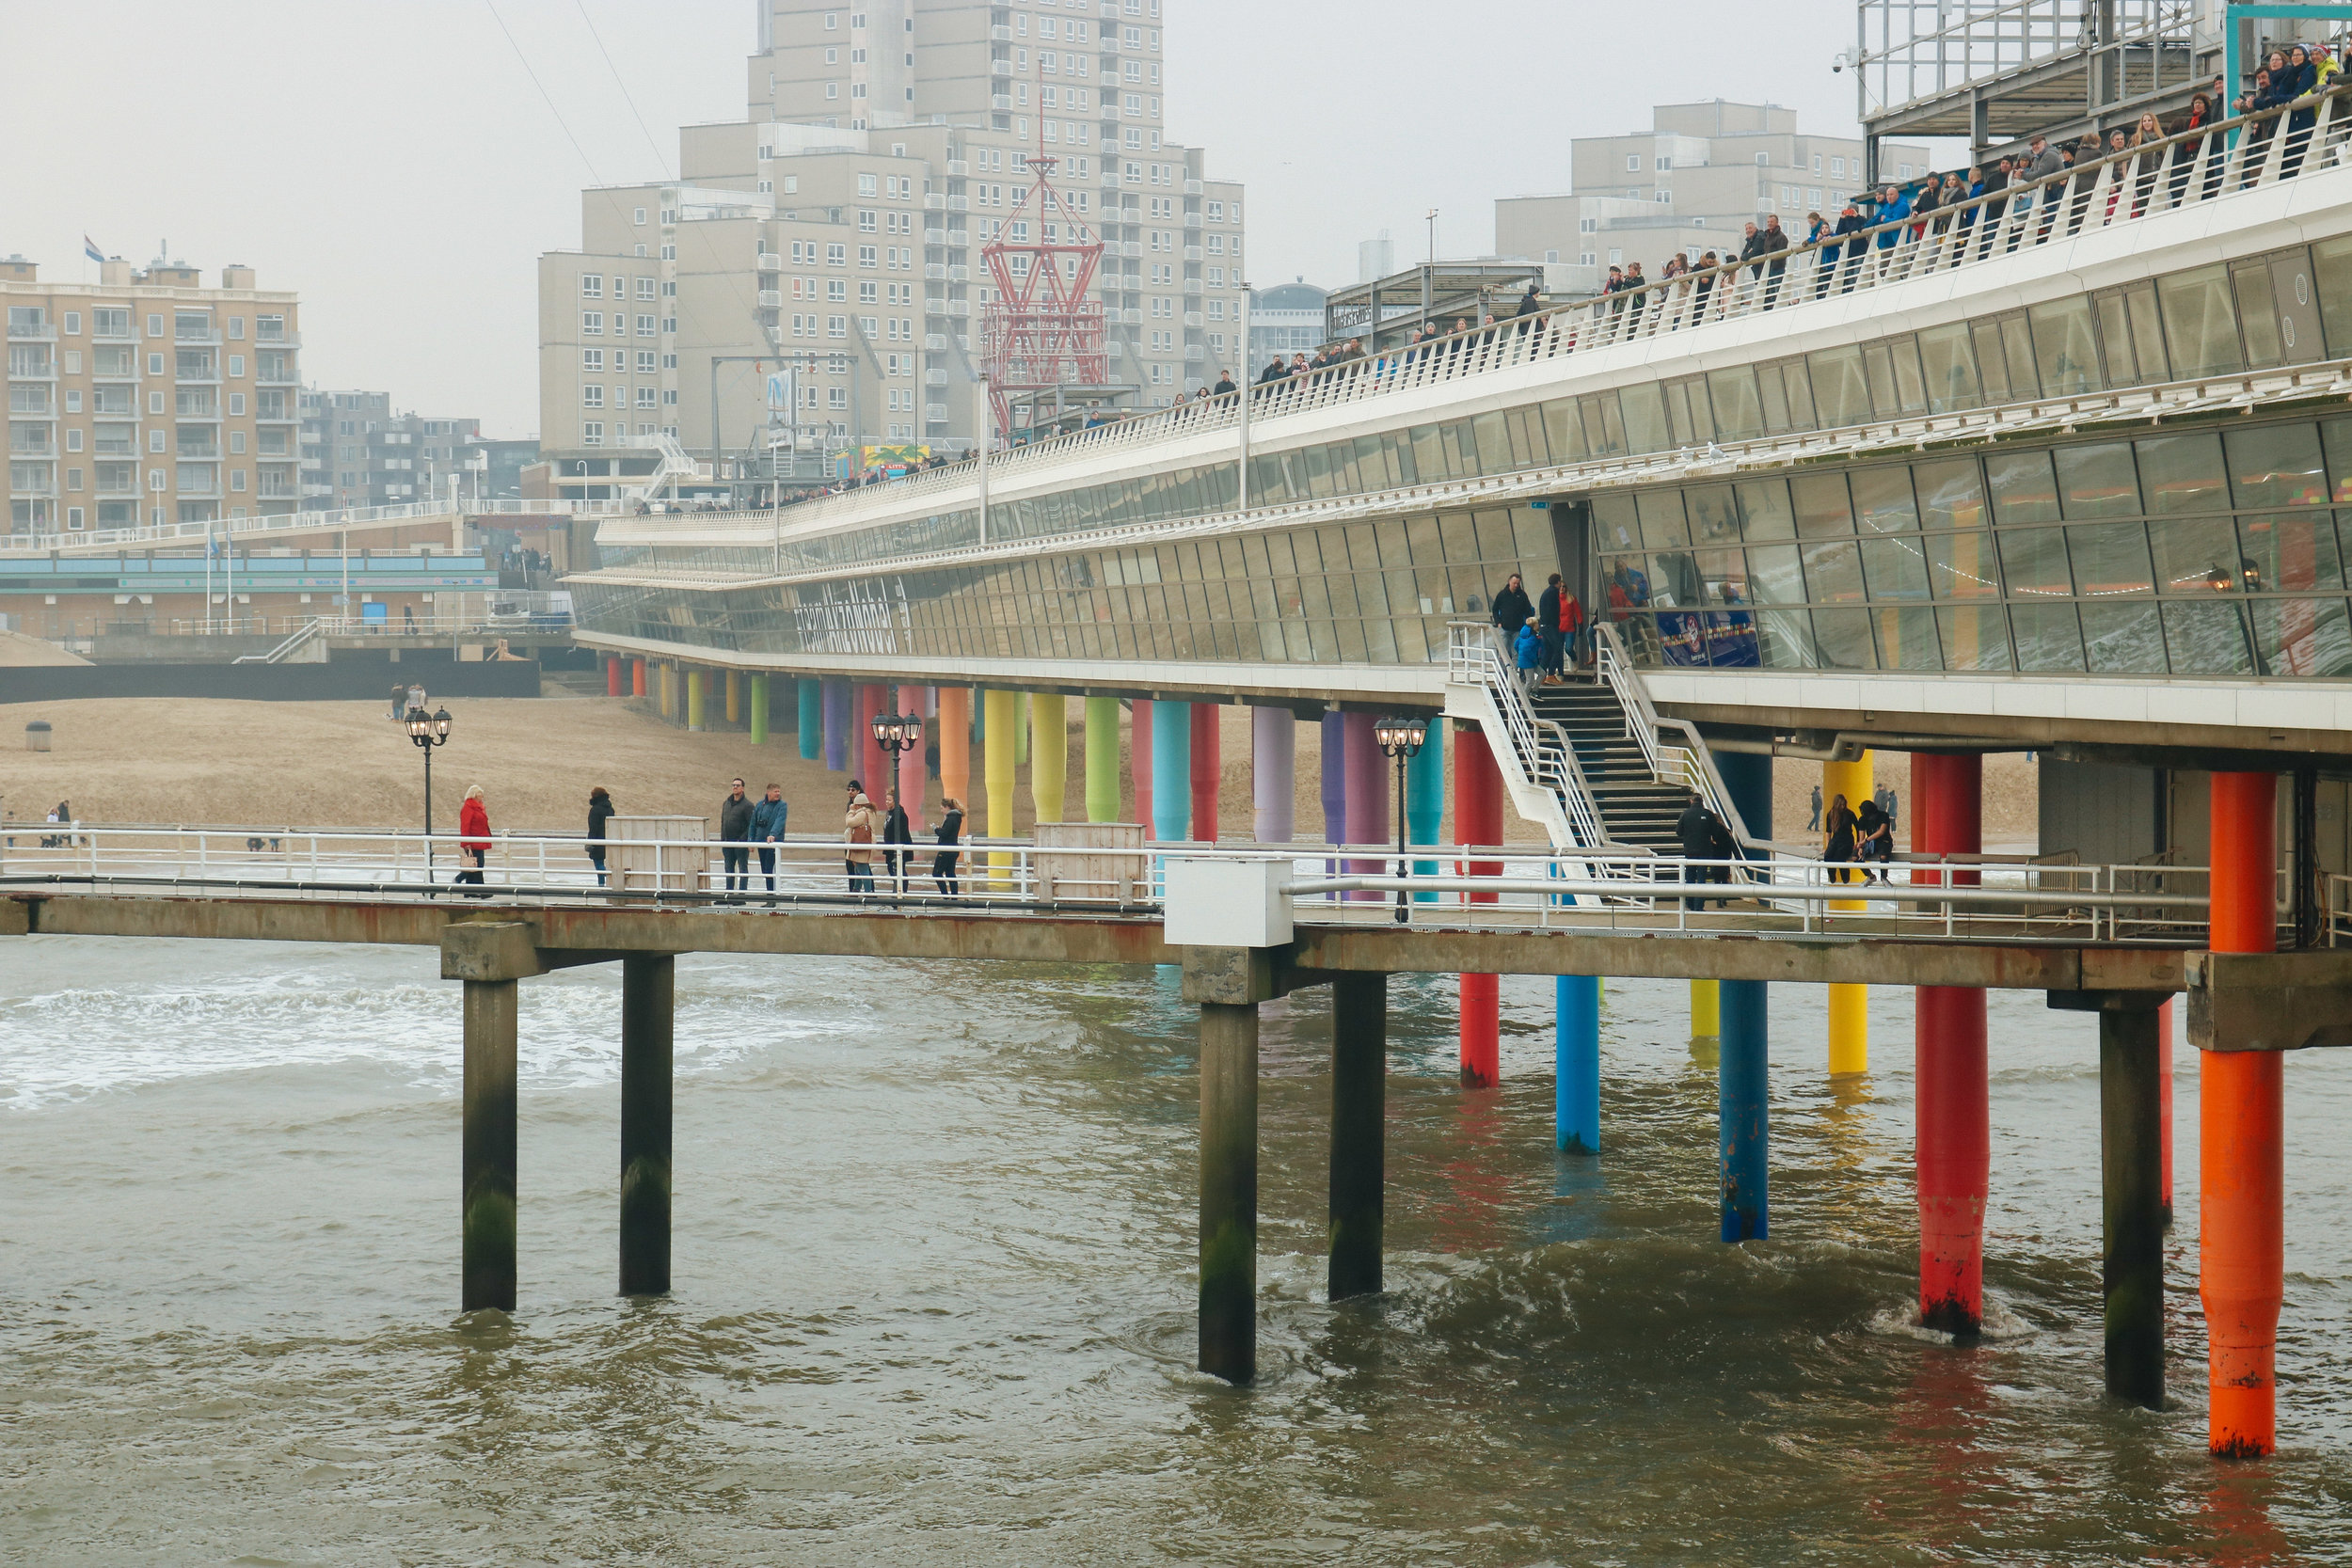 A Day On The Hague Boardwalk | SaltWaterVibes